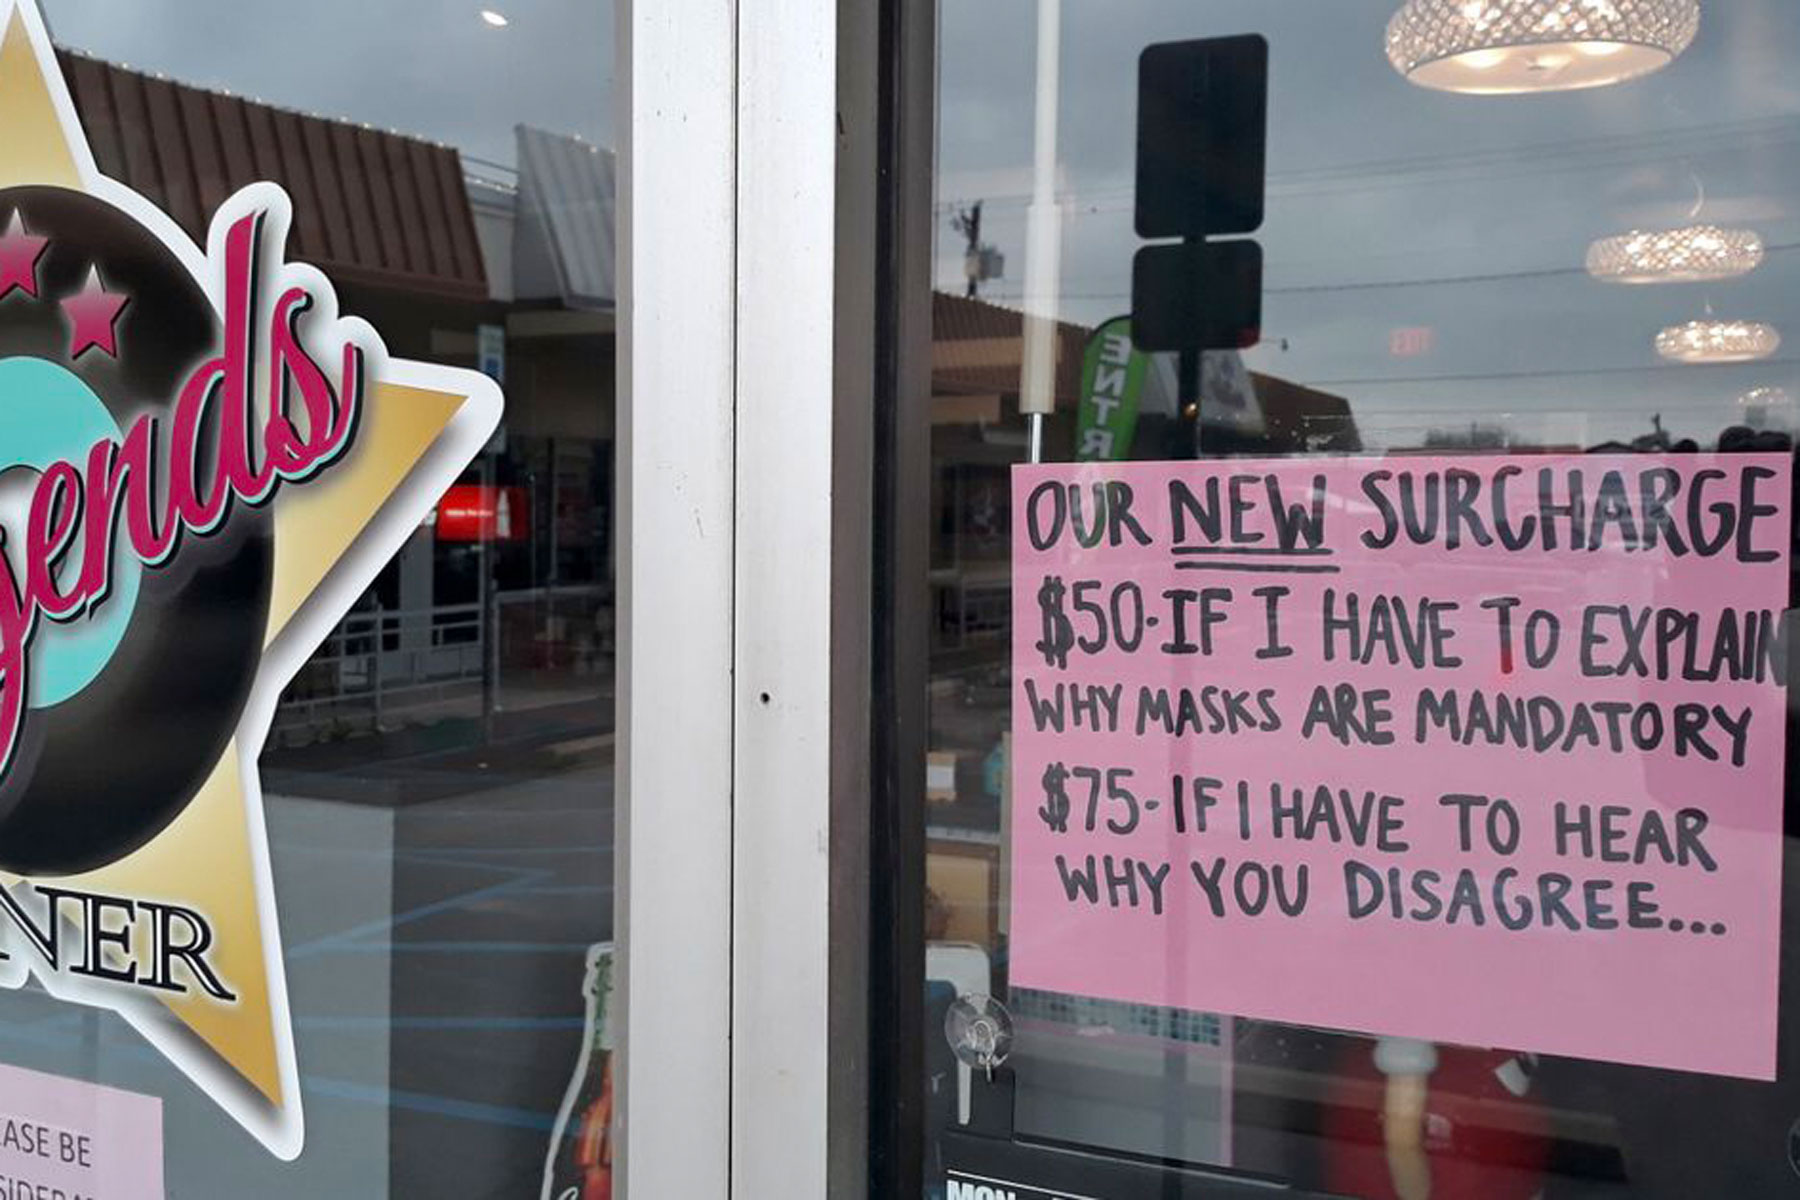 a new sign on the door at legends diner in texas stating people who refuse to wear masks must pay for admittance